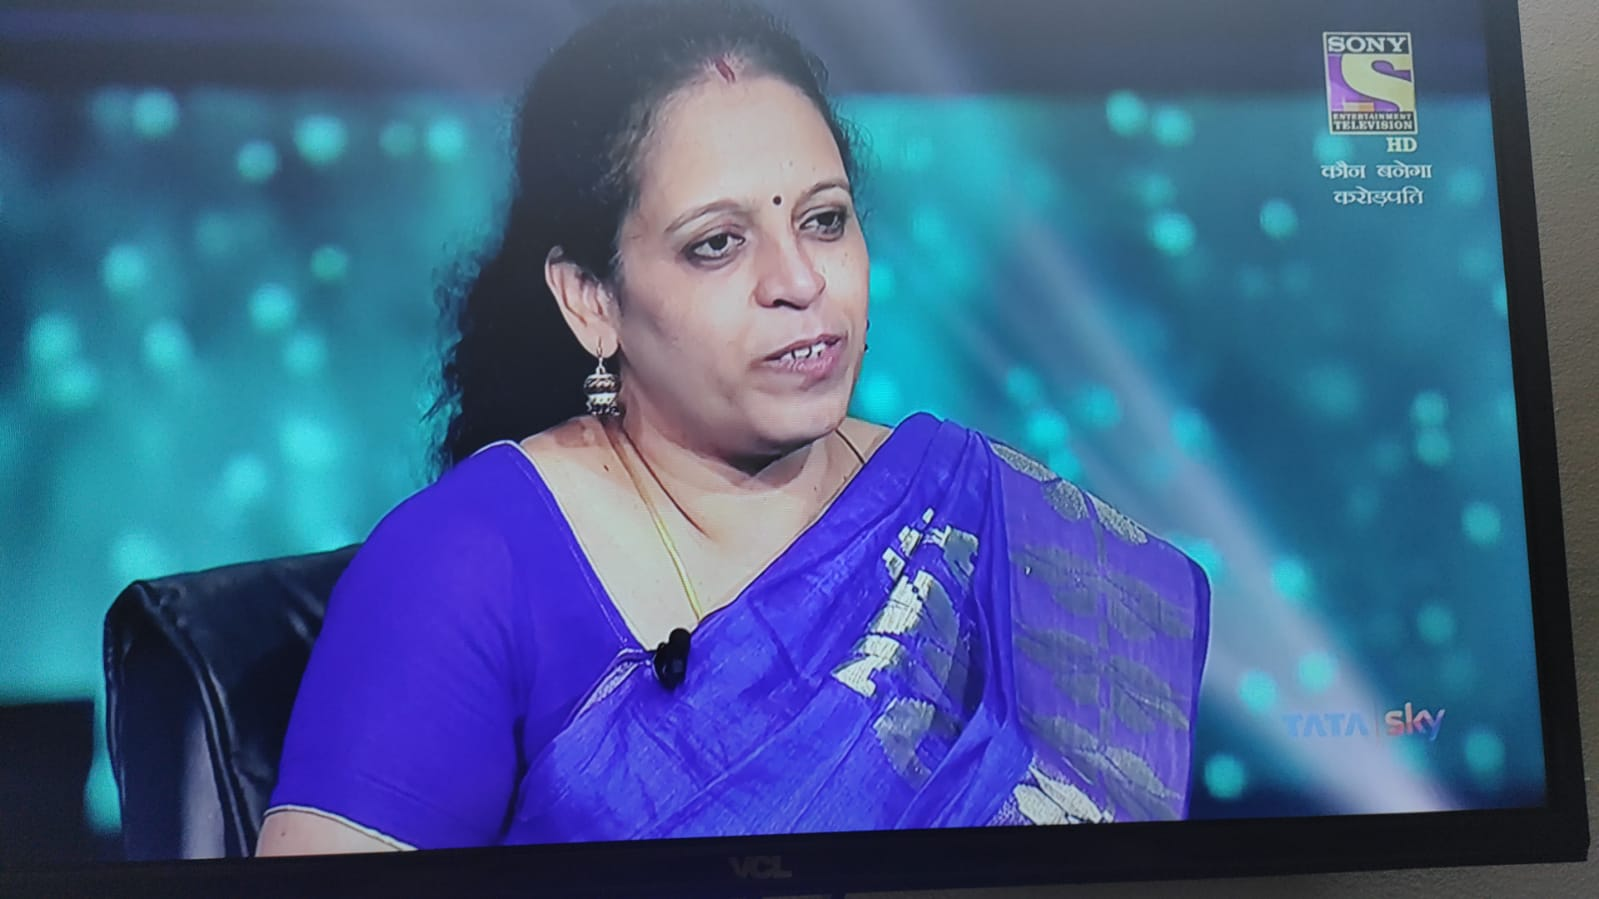 Kalpana becomes the roll-over contestant for the next episode.